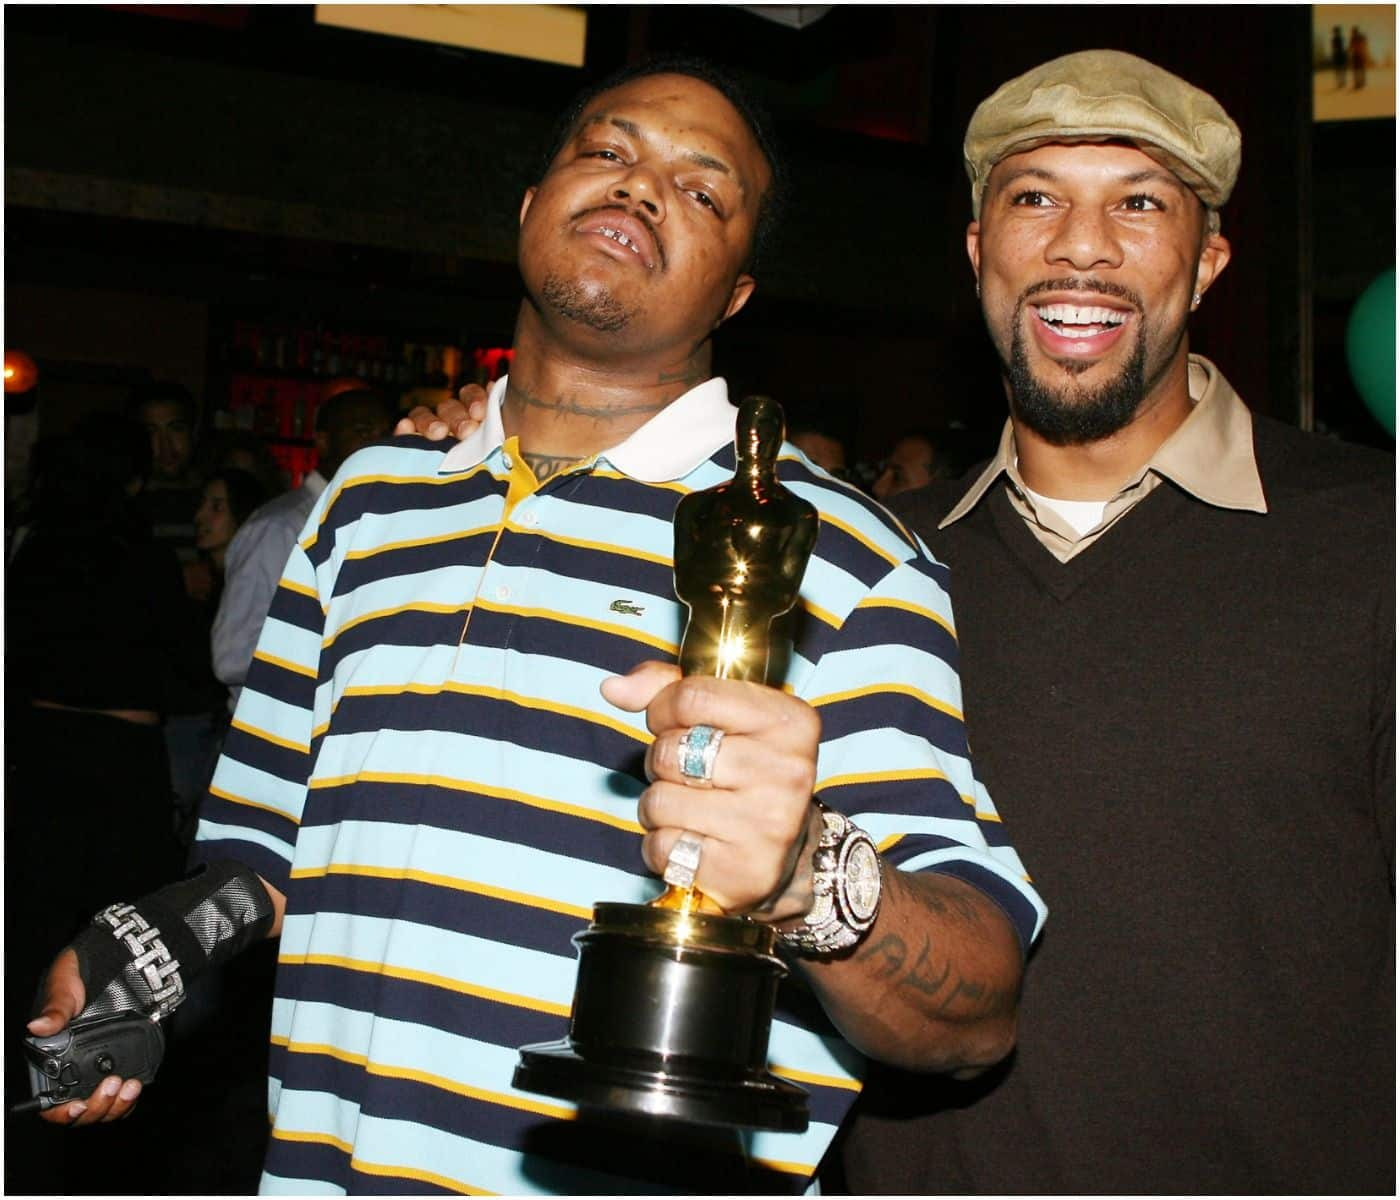 What happened to DJ Paul's arm